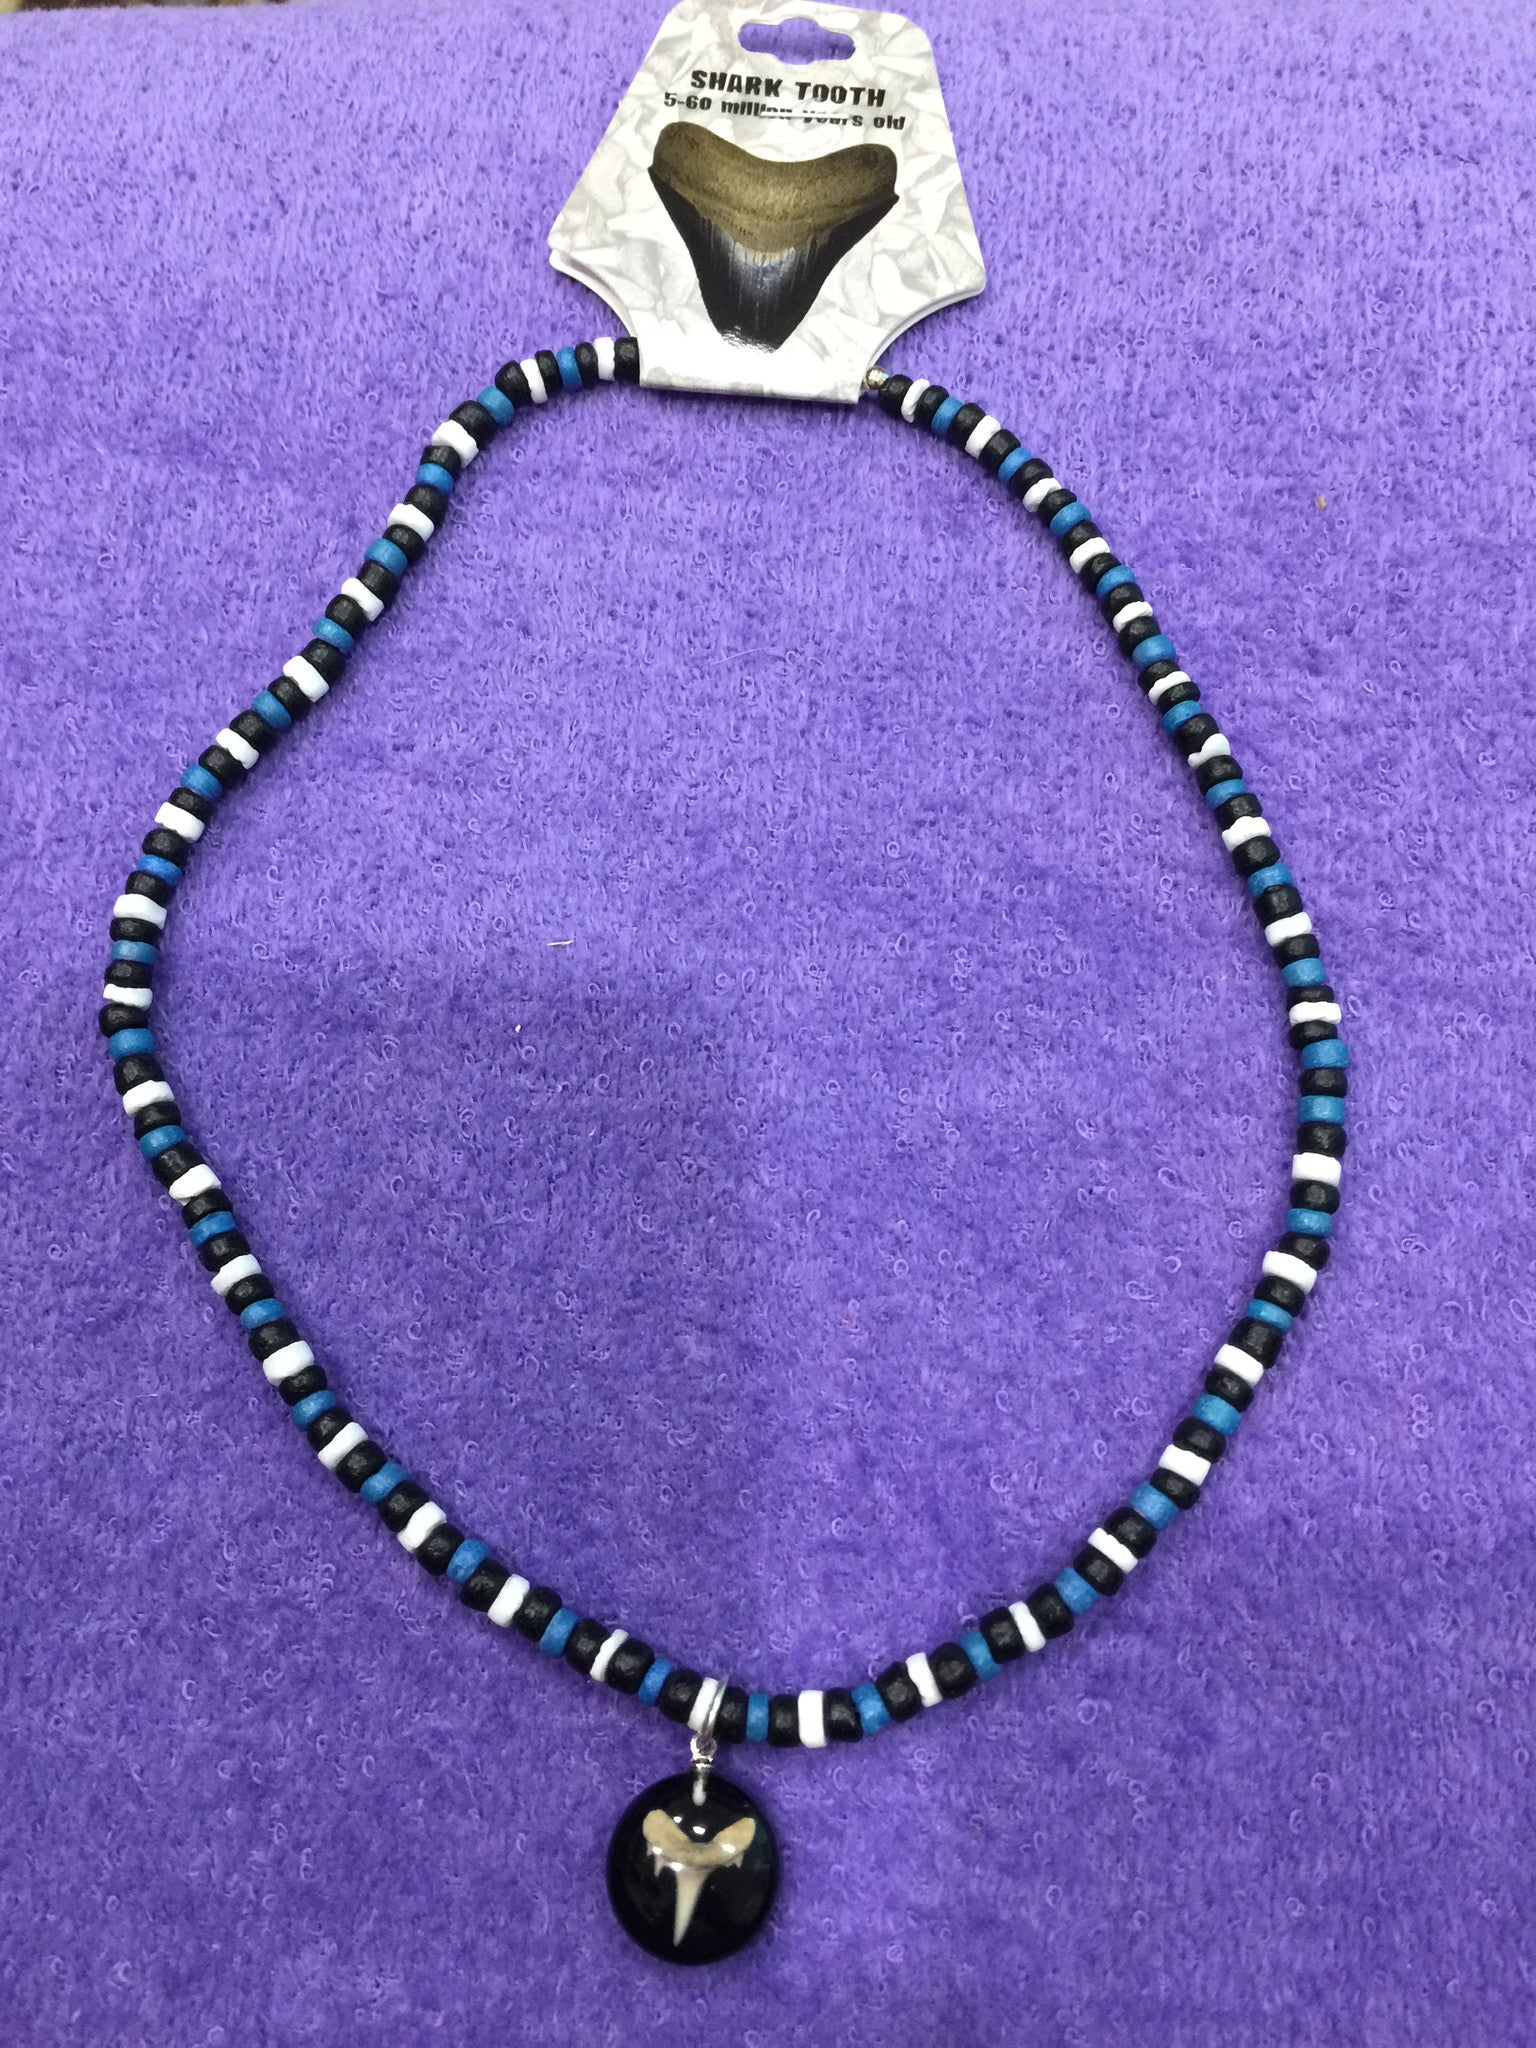 Black/Blue Puka Bead Necklace w/Shark Tooth Pendant